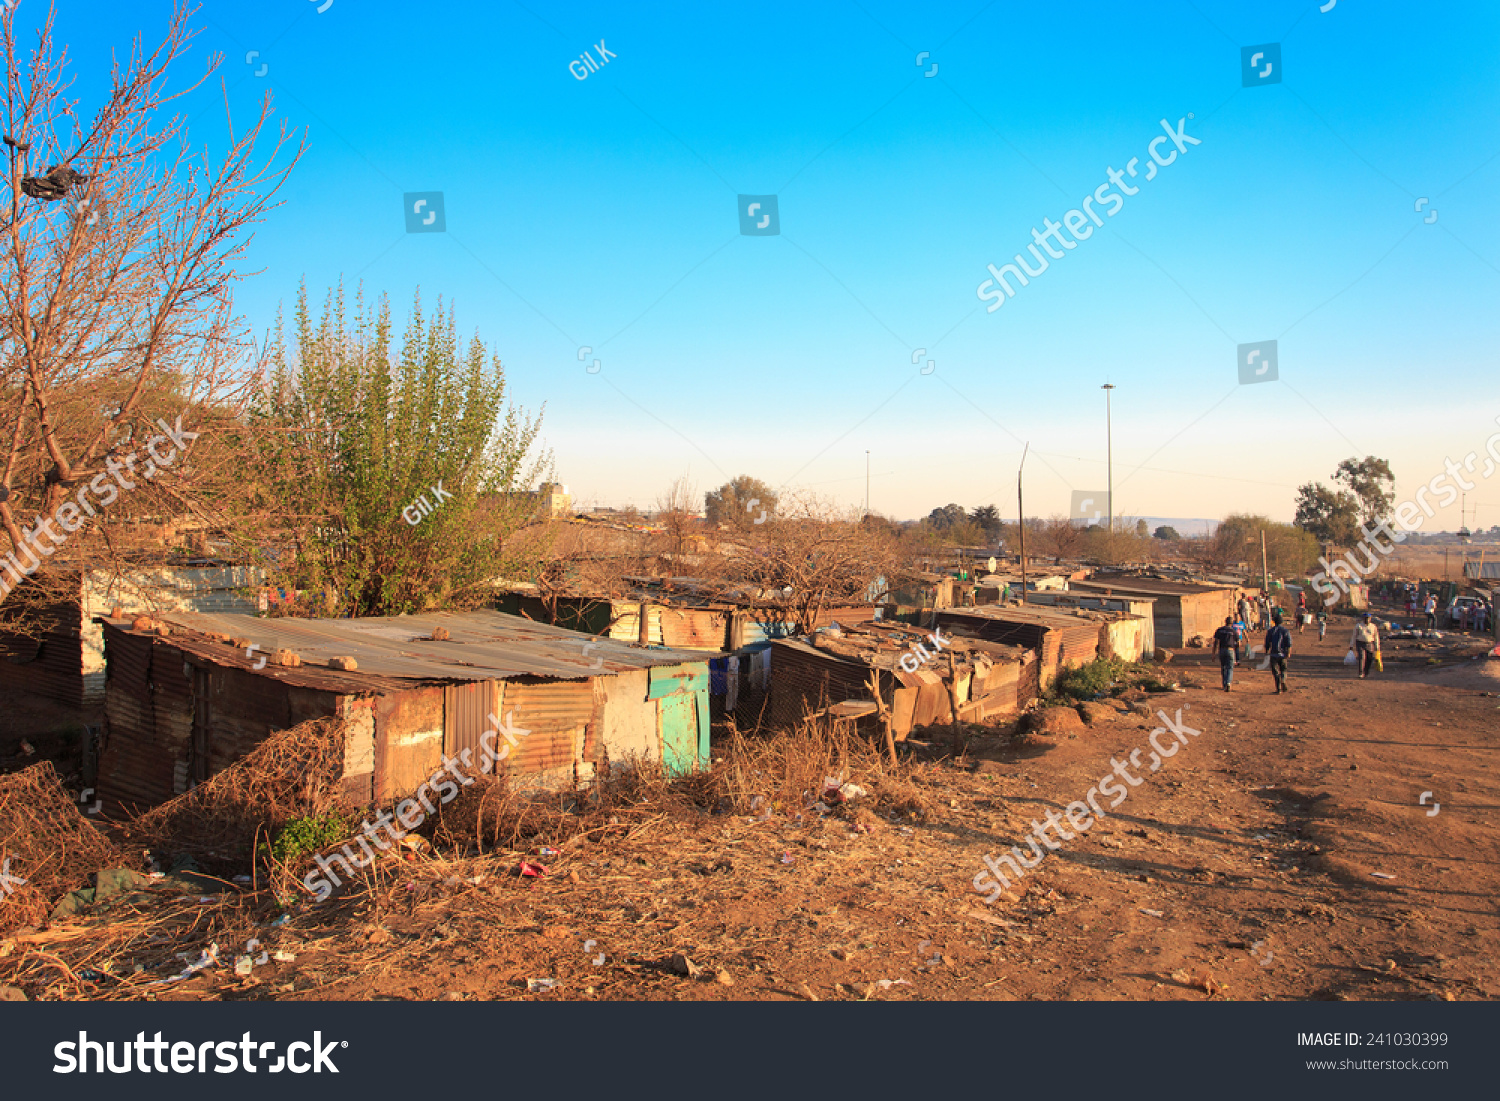 Poorest Part Soweto South West Township Stock Photo - Poorest part of africa